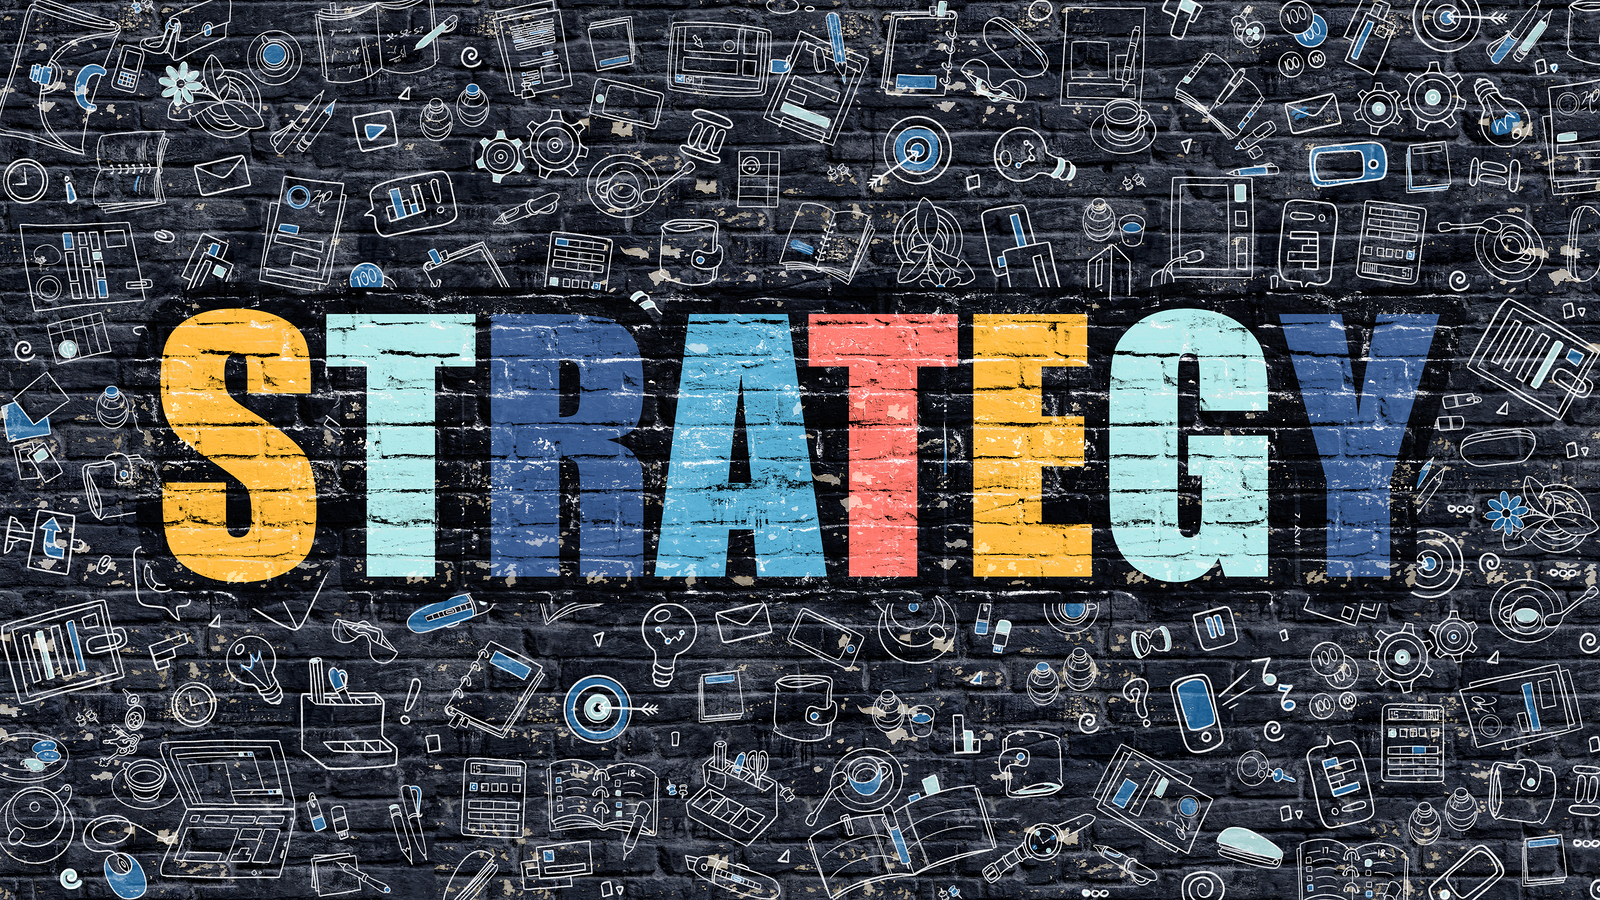 greg bustin Questions You Should Ask About Strategic Planning